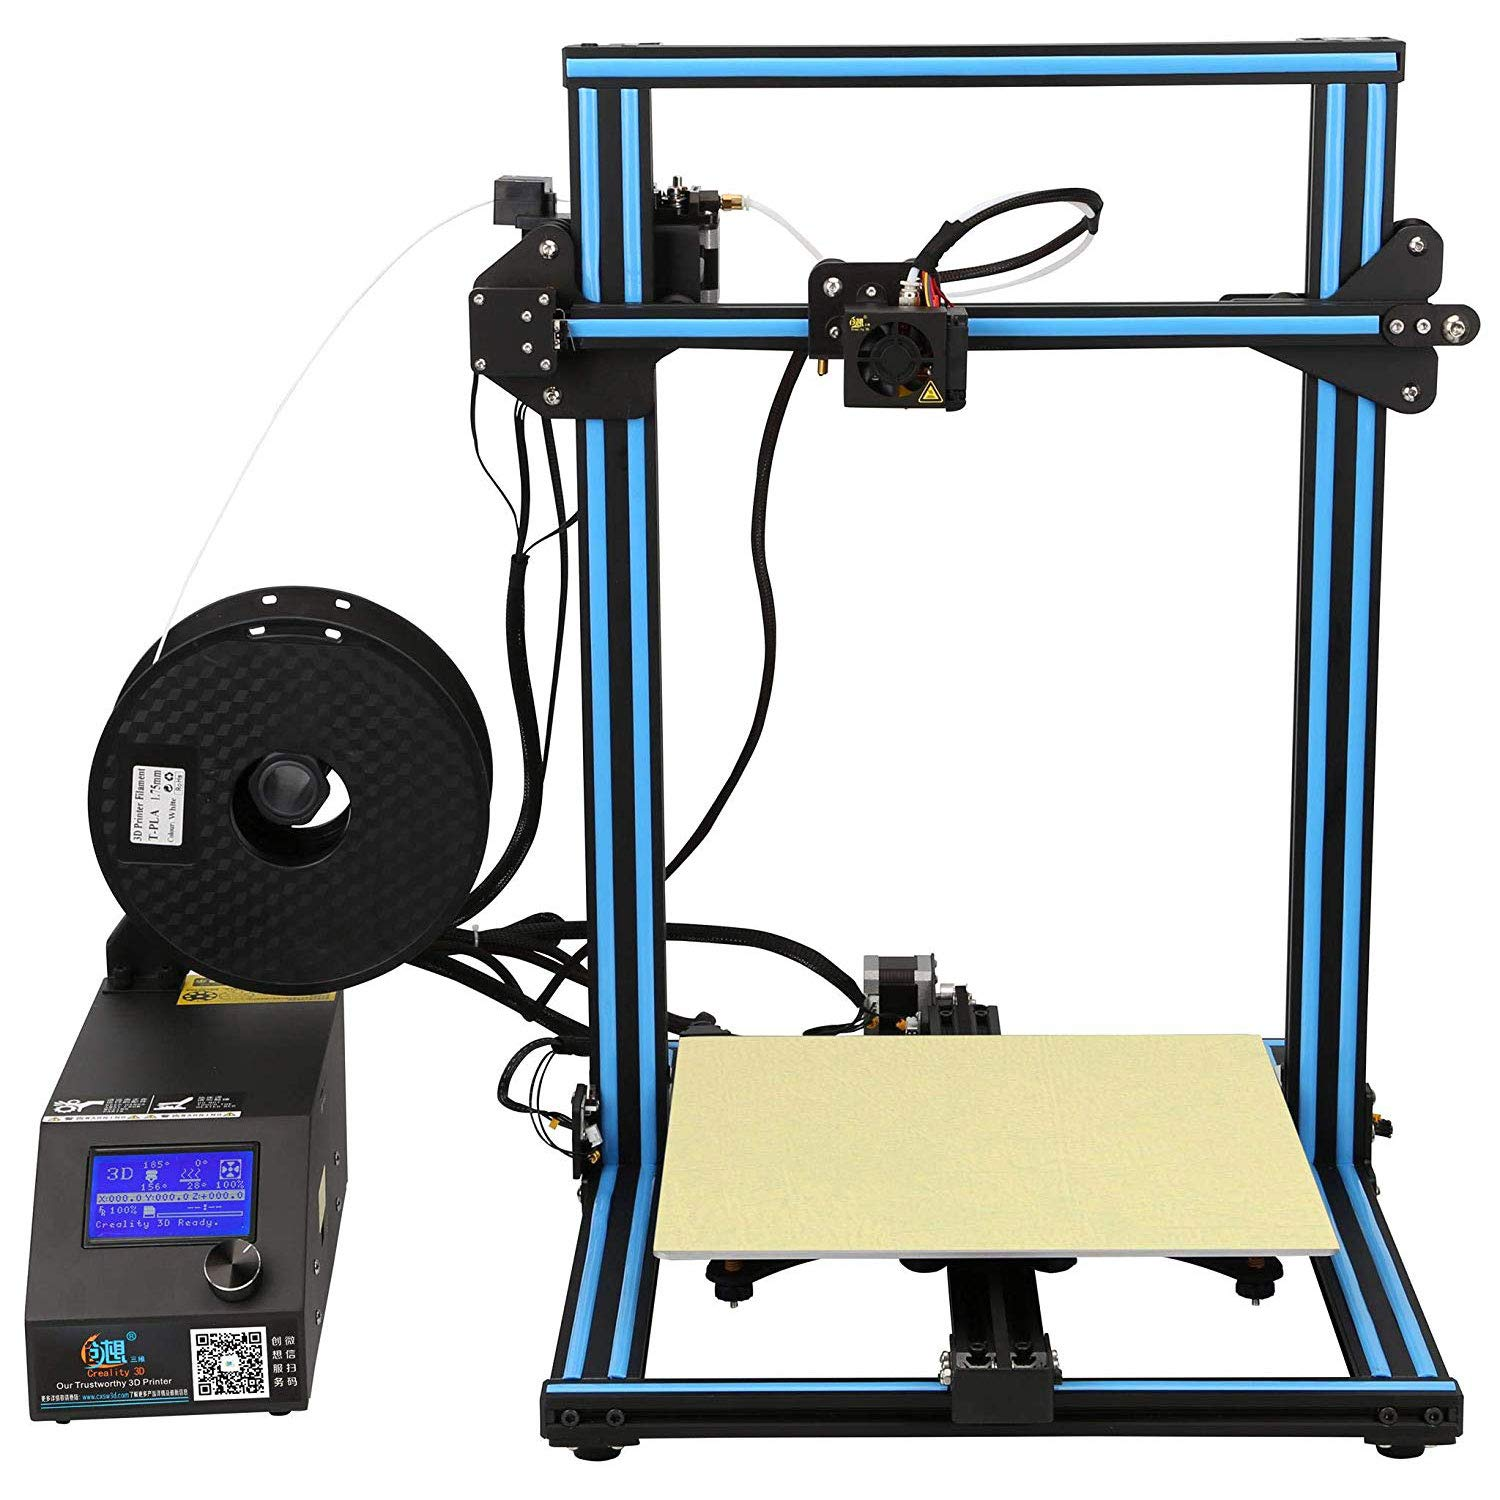 Creality - Impresora 3D CR-10S, 300 x 300 x 400 mm: Amazon.es ...